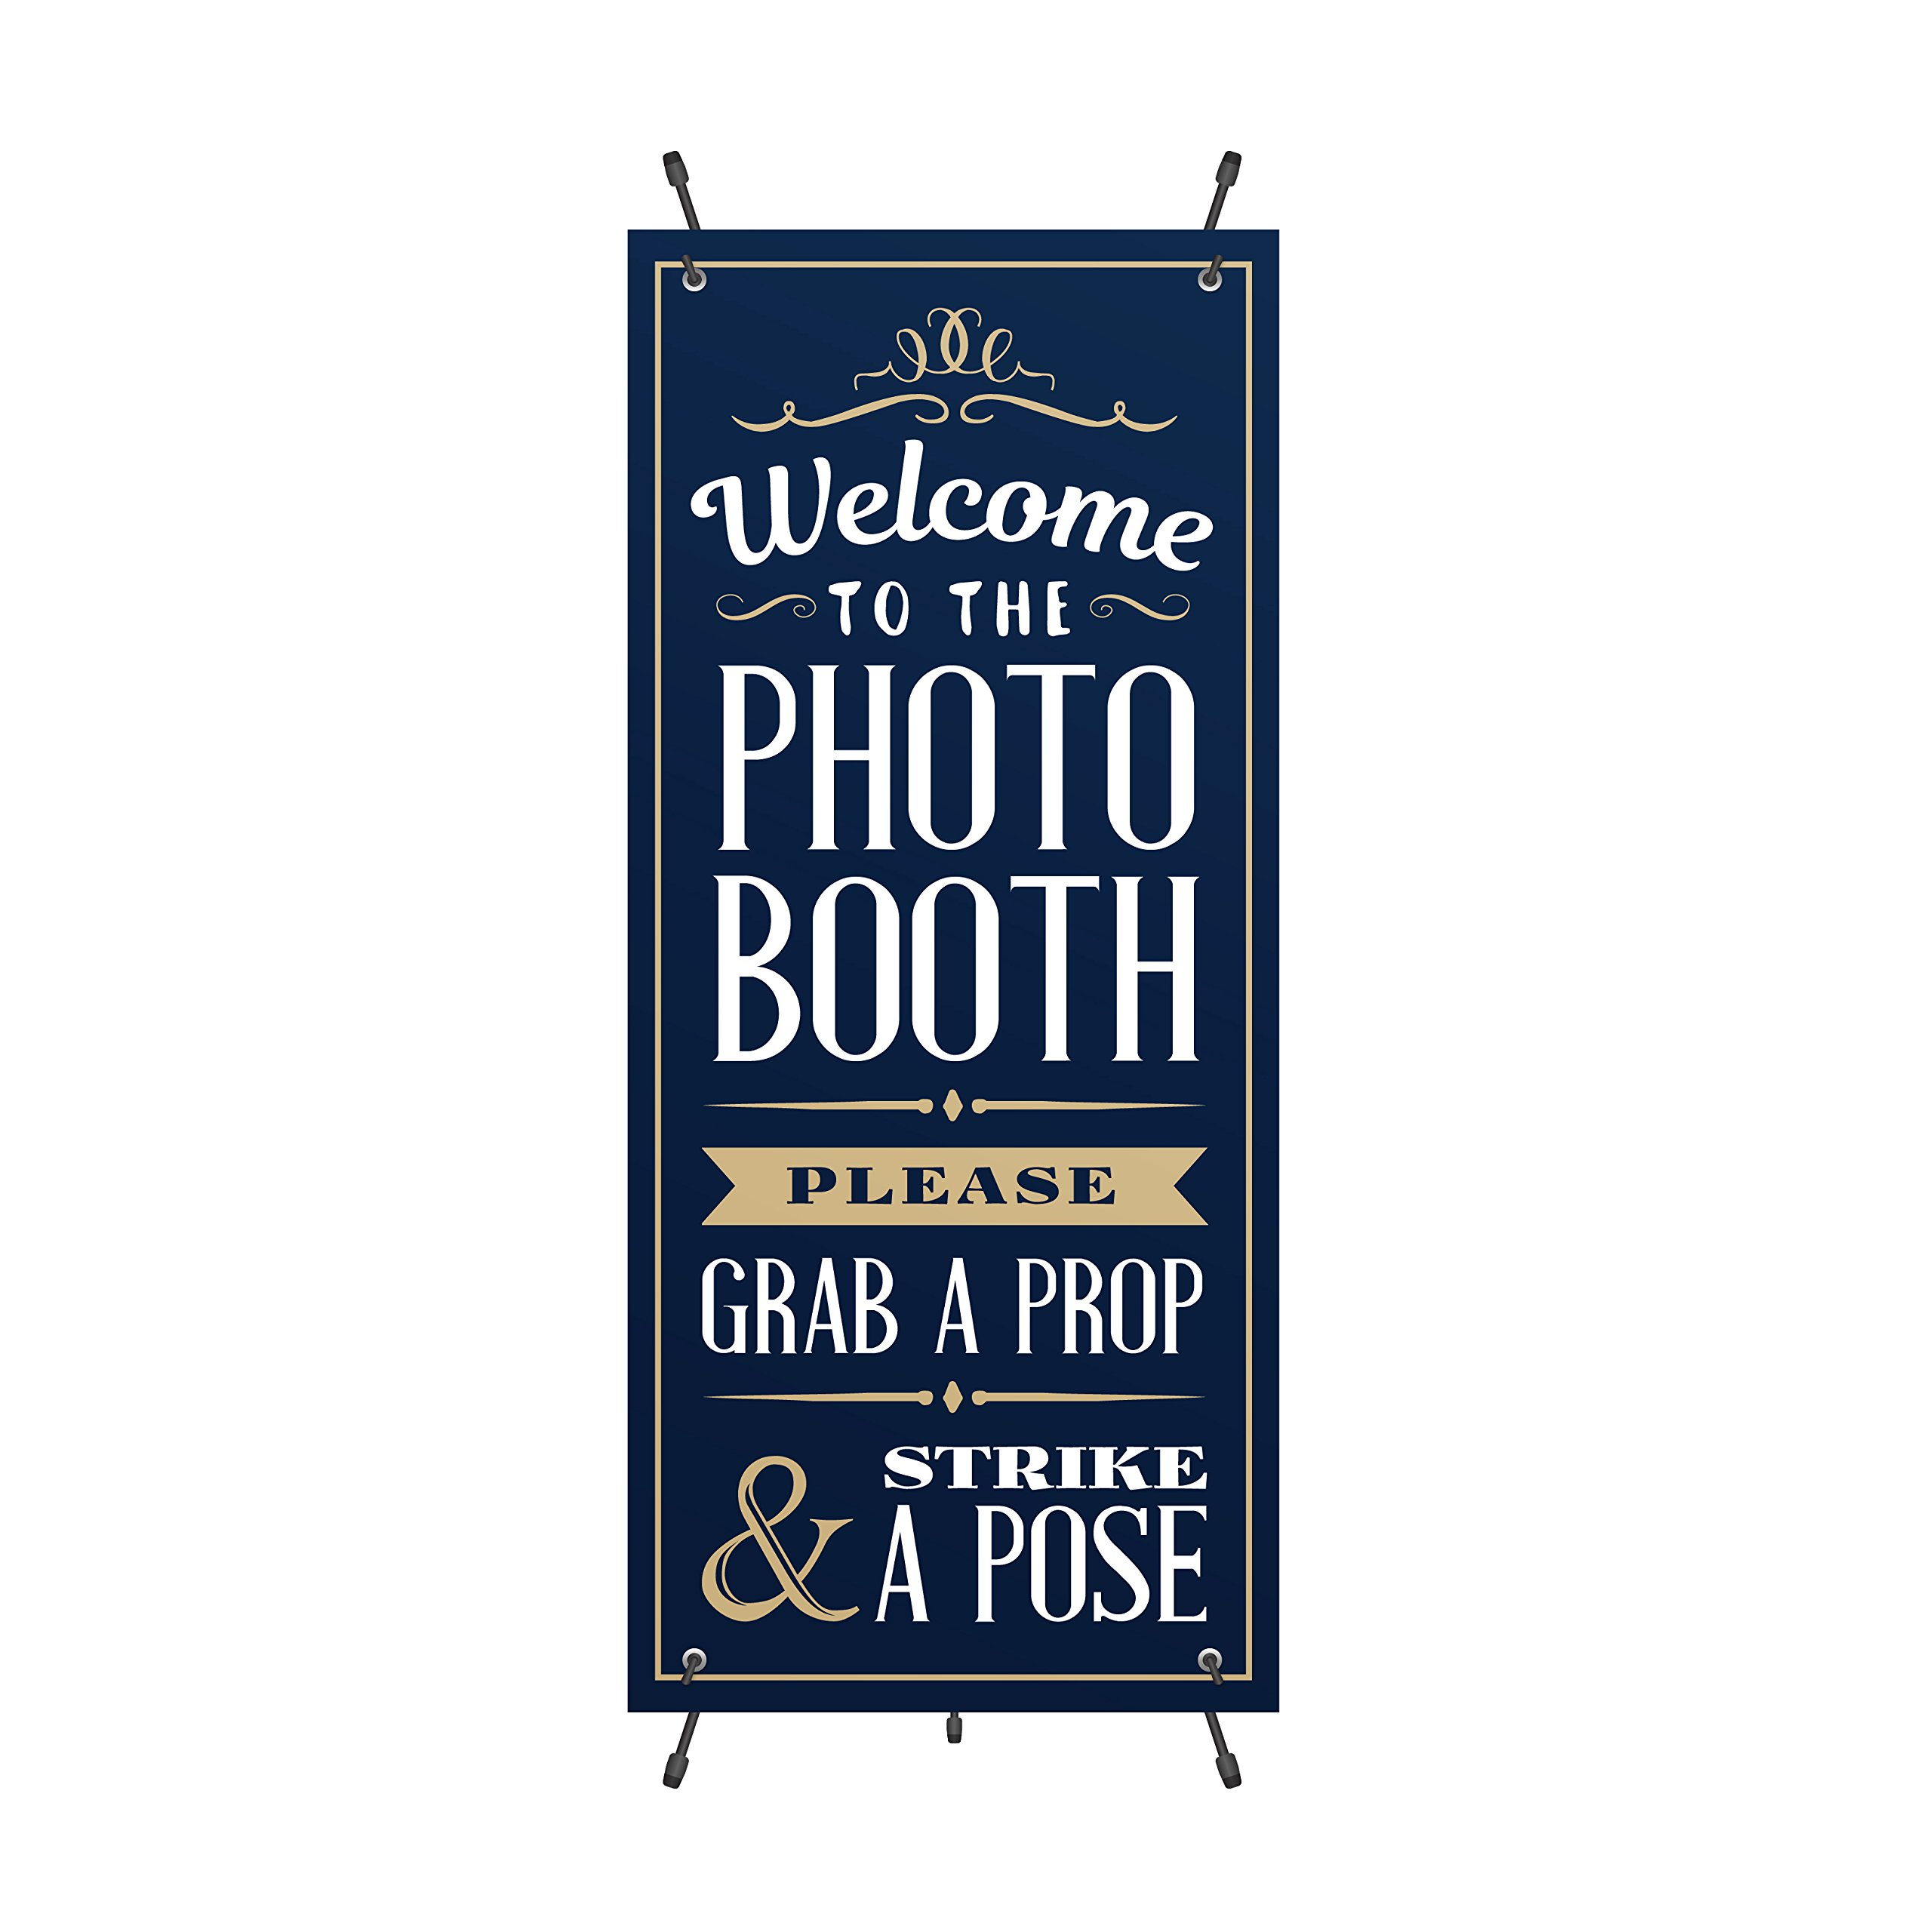 PHOTO BOOTH BANNER, Great for Photo Booth Businesses, Easy to Setup, Perfect Banner for Weddings Birthdays and more! Beautiful Clean Look.